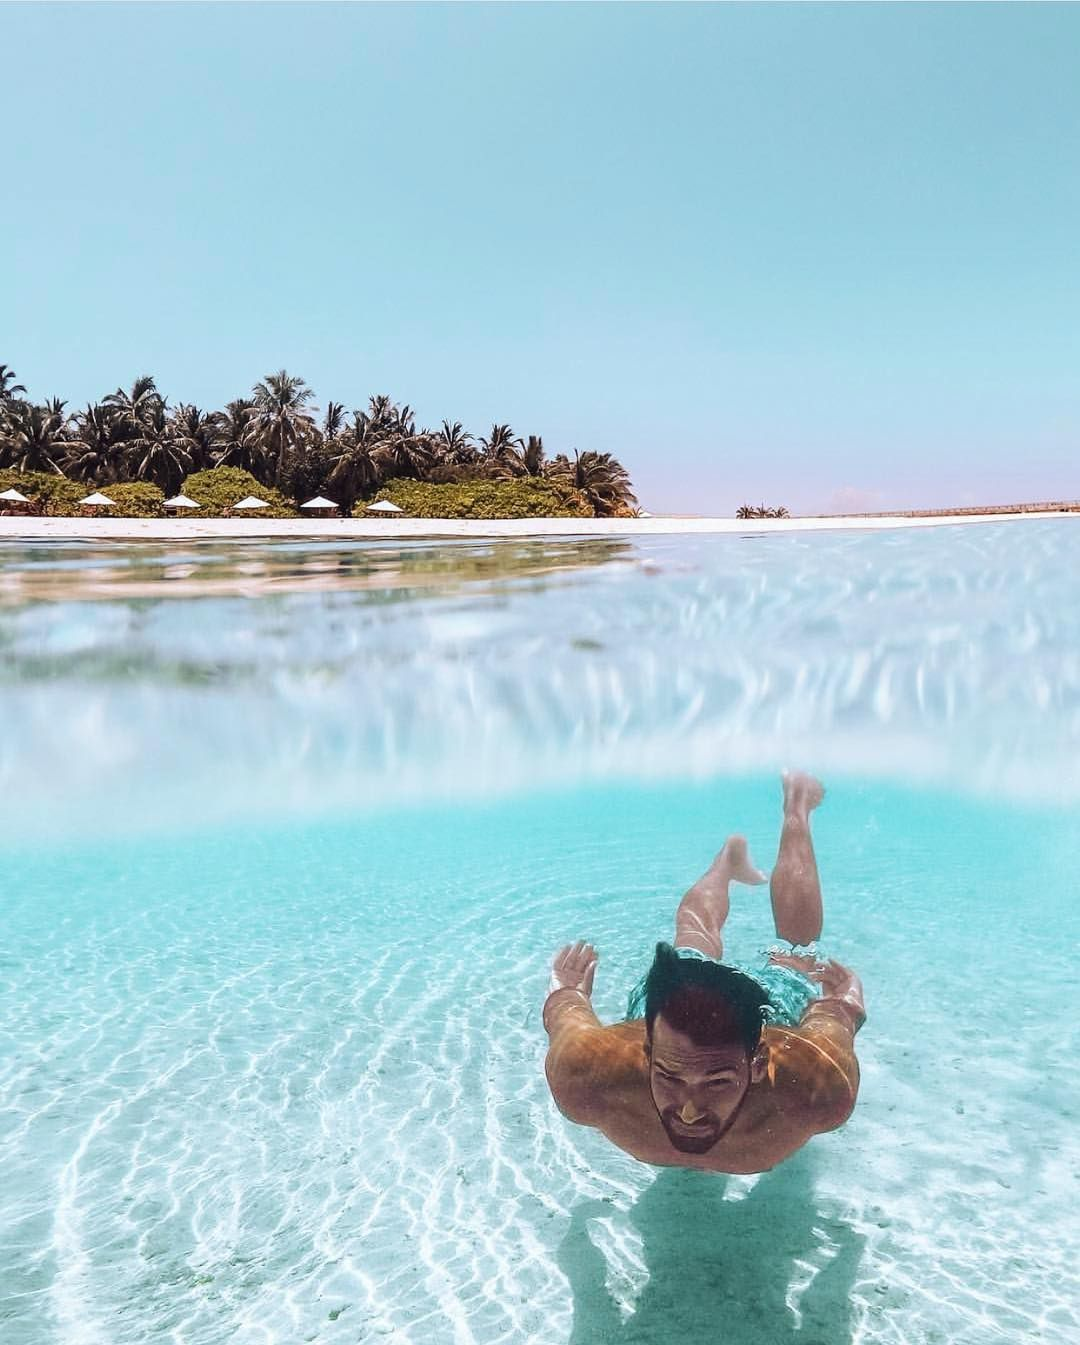 The Best Way To Enjoy The Crystal Clear Waters